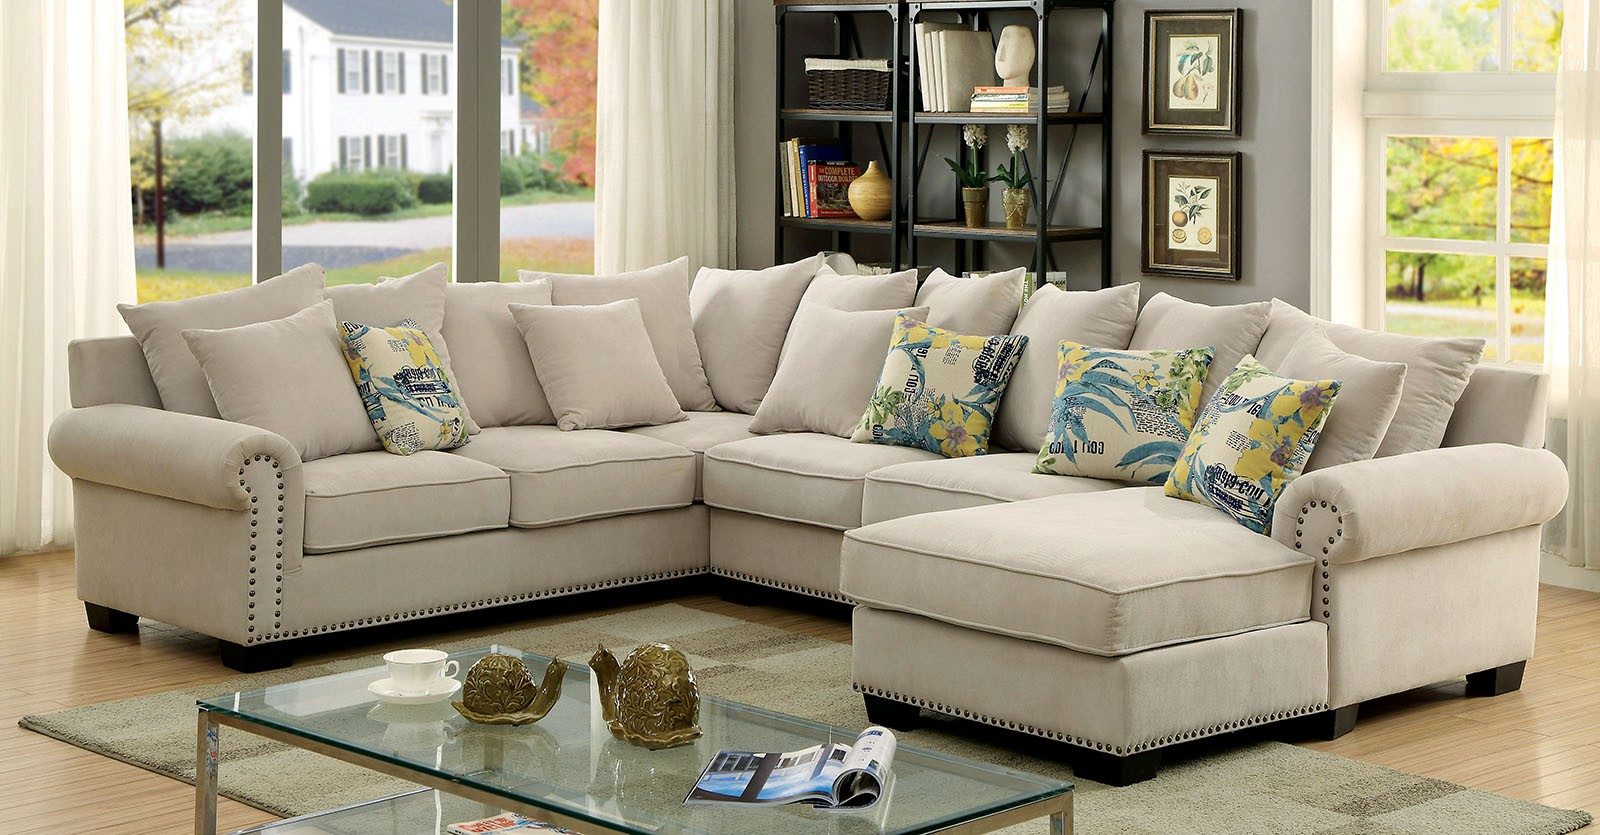 Skyler Ivory Transitional Fabric Rolled Arms Sectional